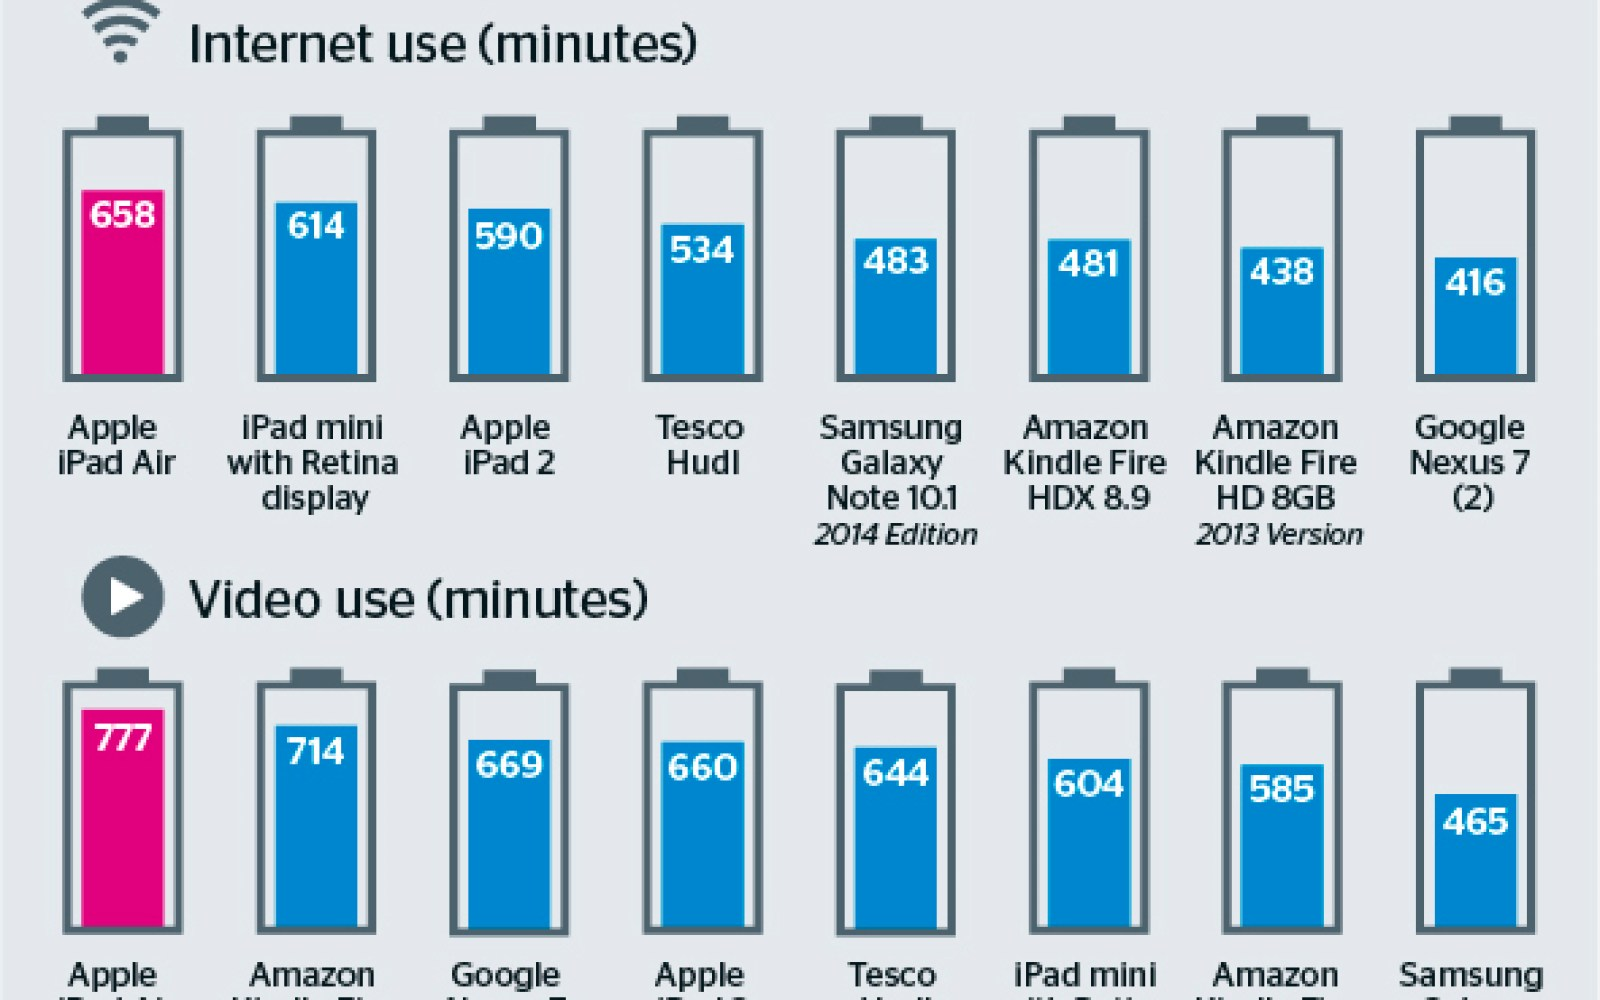 iPad Air conquers all in tablet battery test with 11-13 hour showing